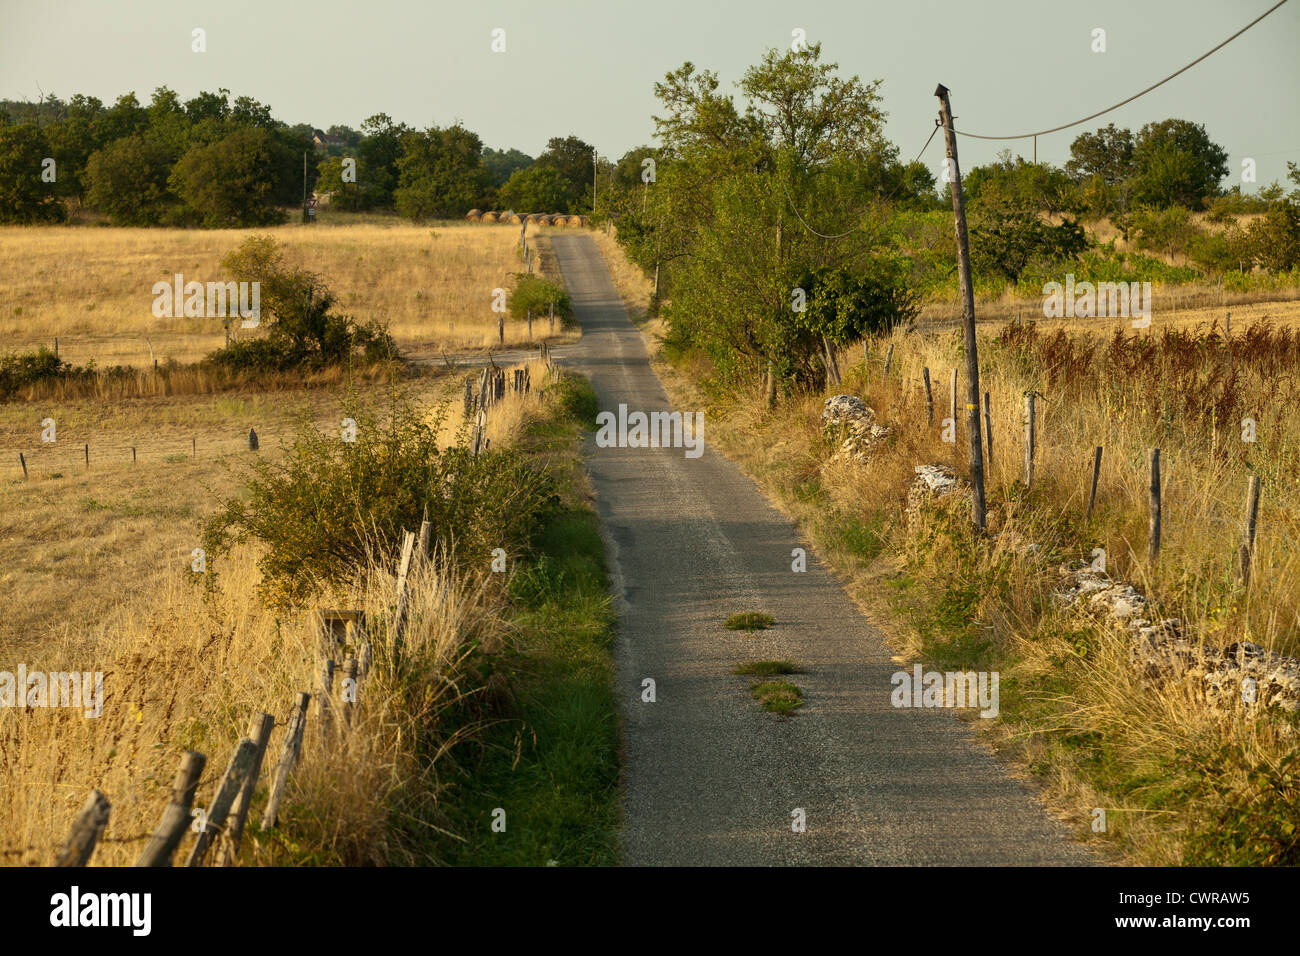 A country road in the Lot region of France. Stock Photo